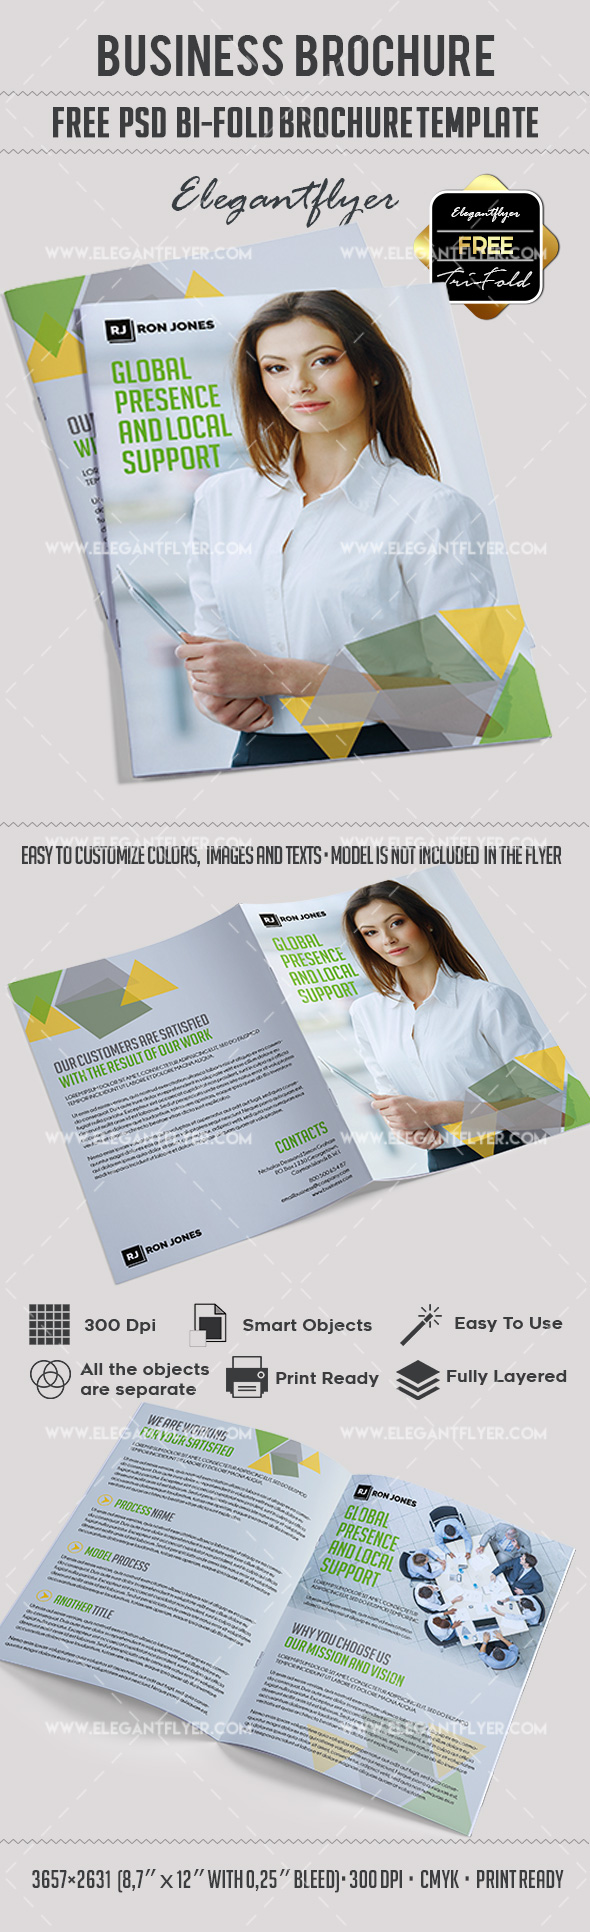 Business – Free Bi-Fold PSD Brochure Template